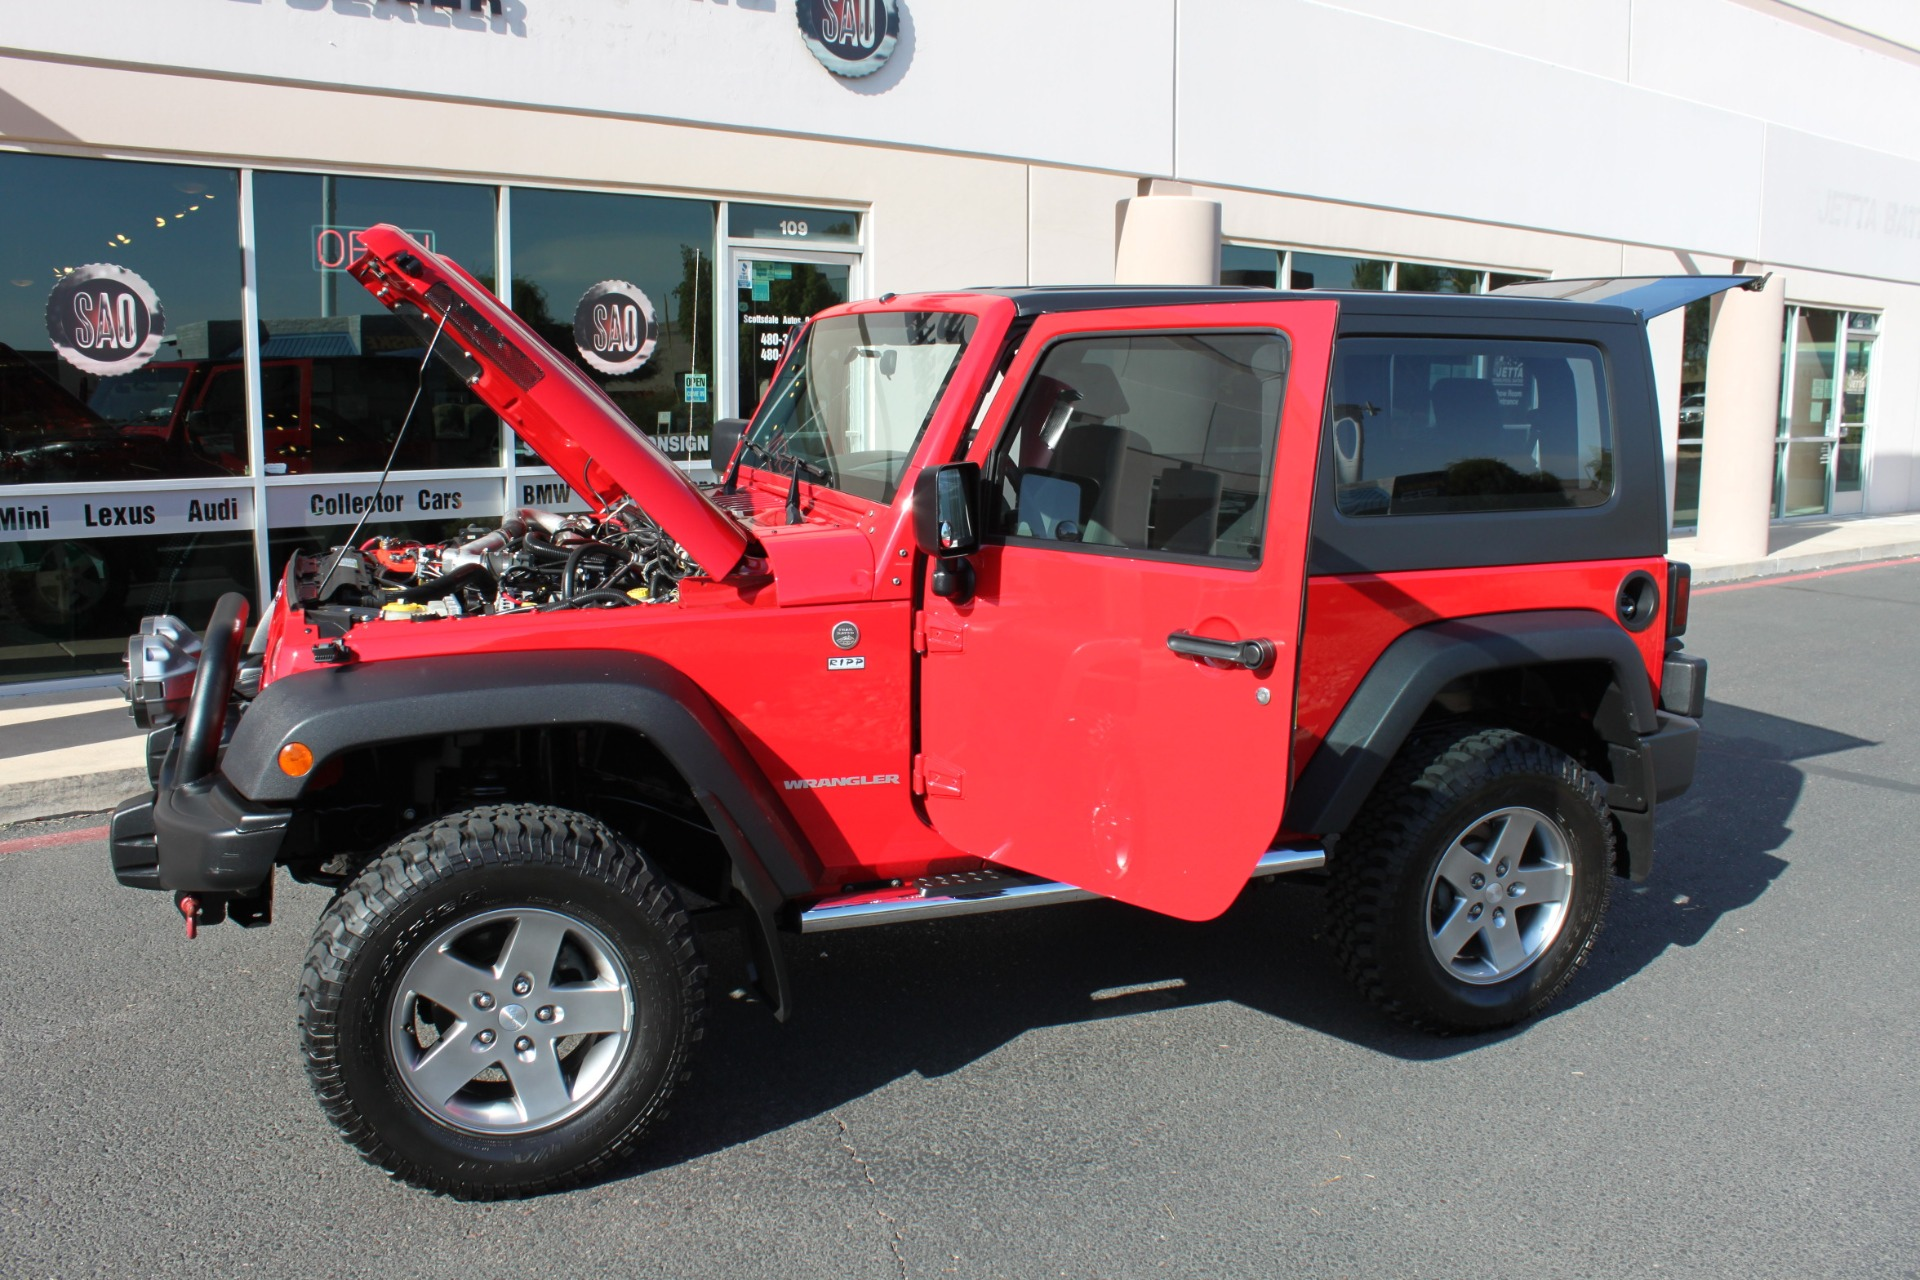 Used-2007-Jeep-Wrangler-X-Ripp-Supercharged-LS430